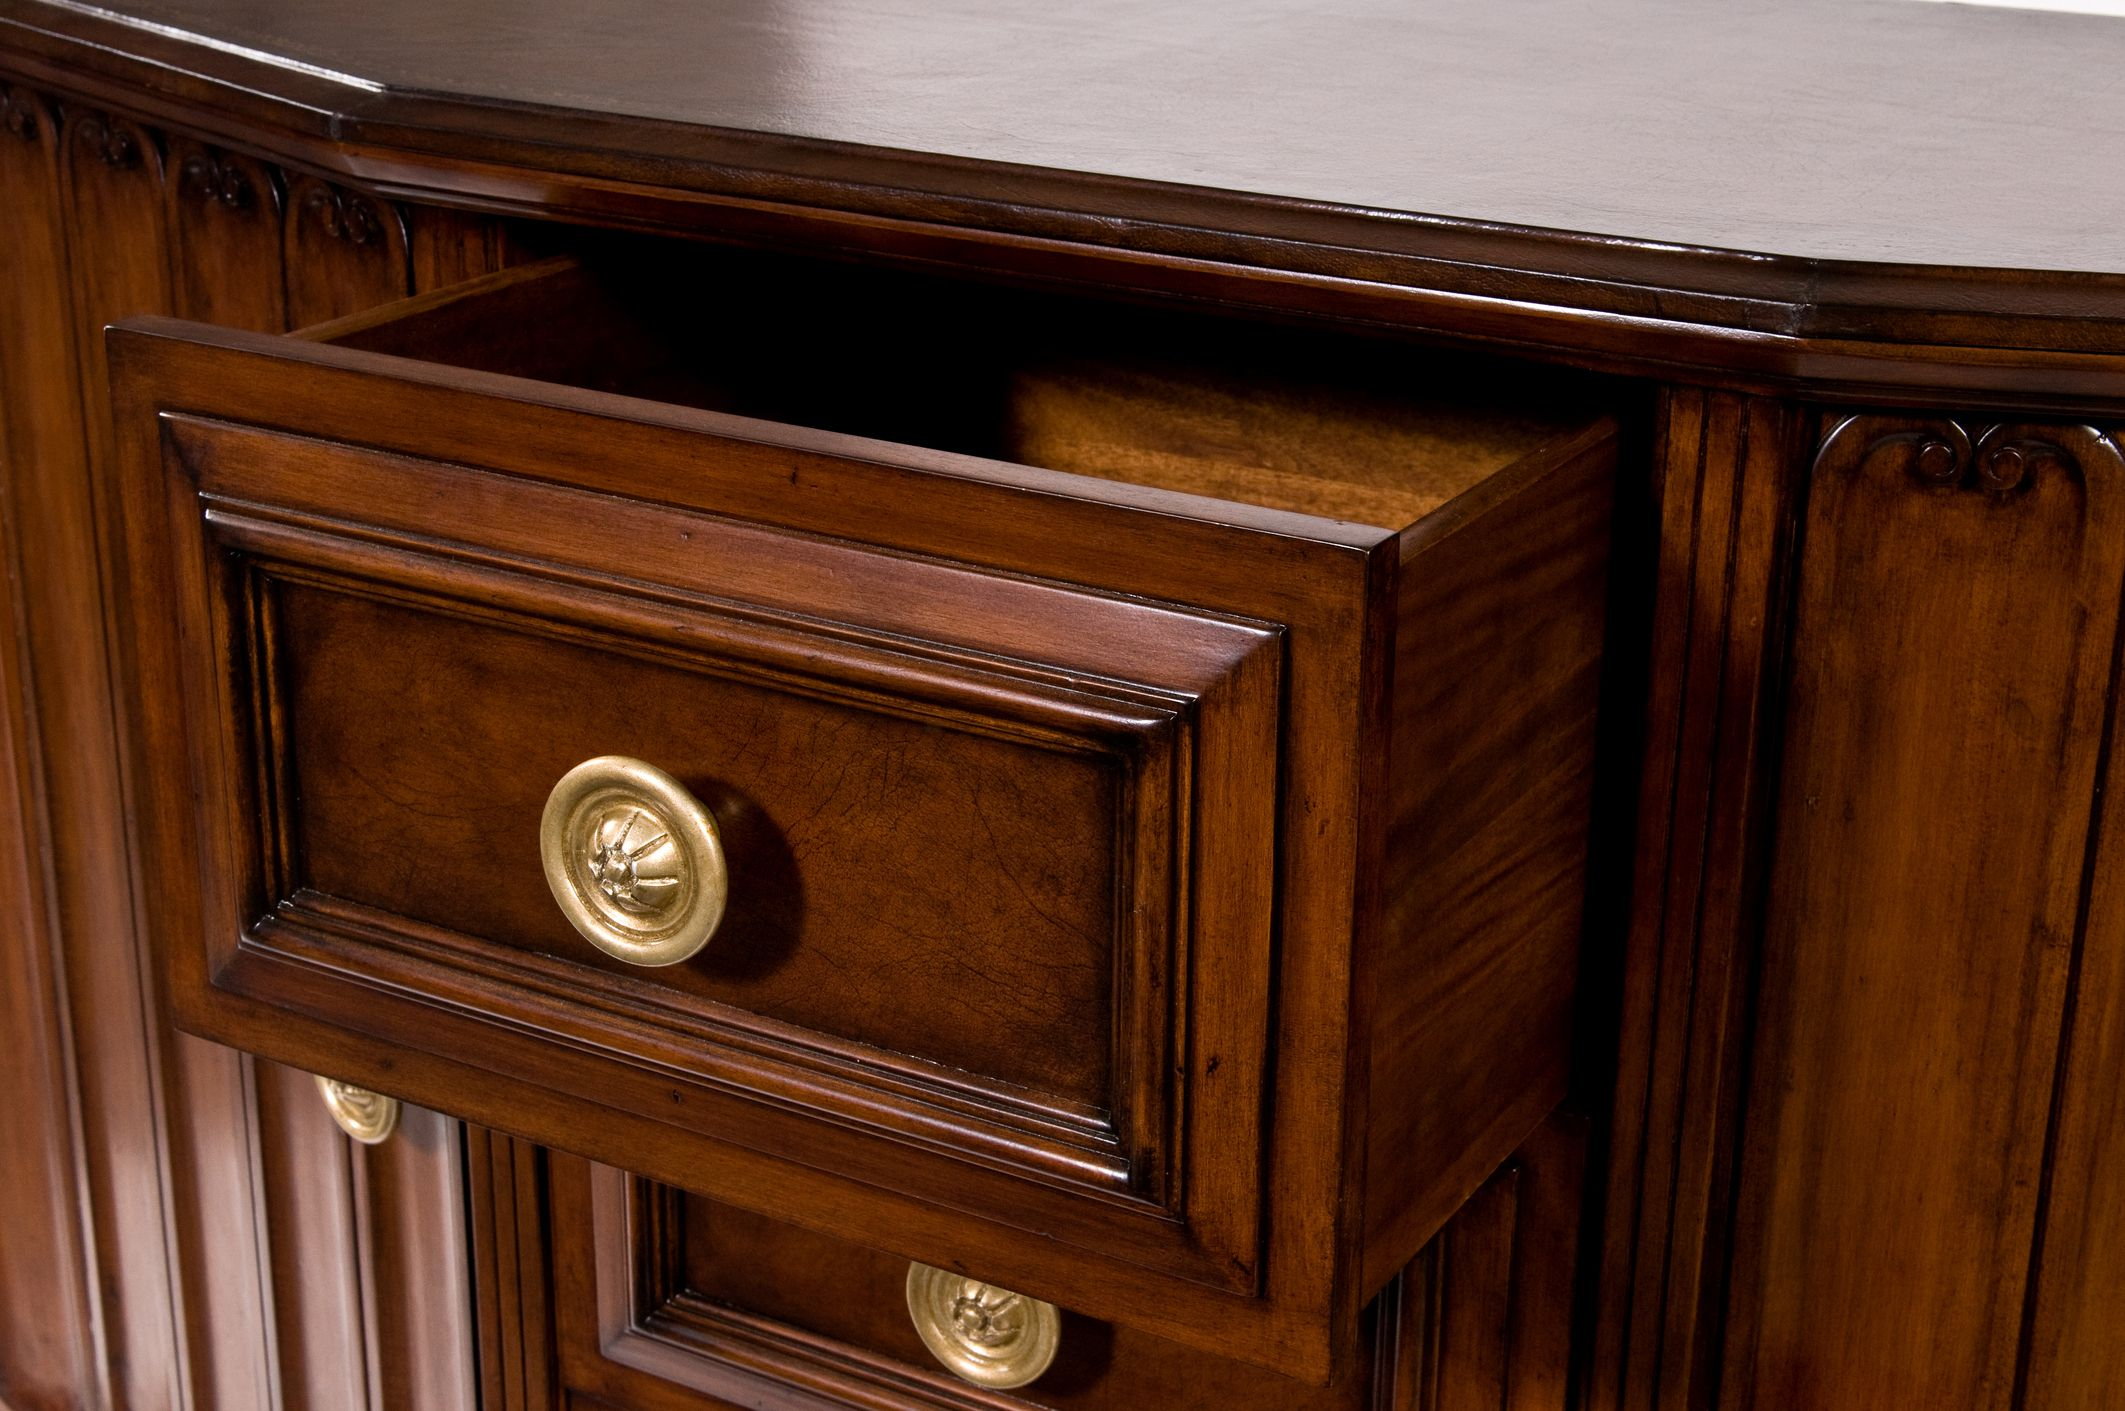 Helpful hints for buying walnut furniture